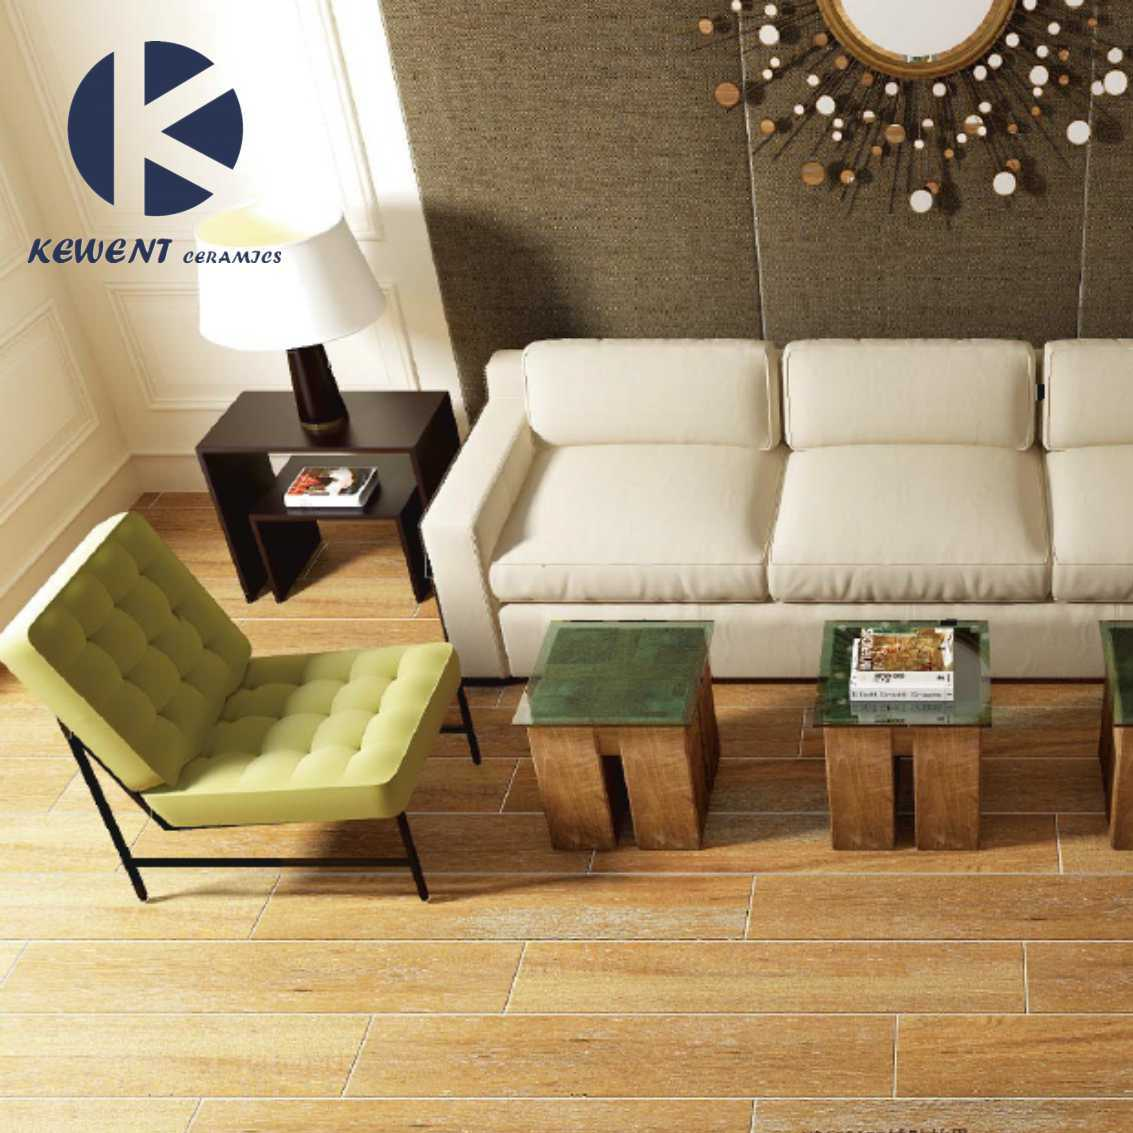 Hot Sale Interior Building Material Wooden Look Ceramic Tiles for Wall and Floor